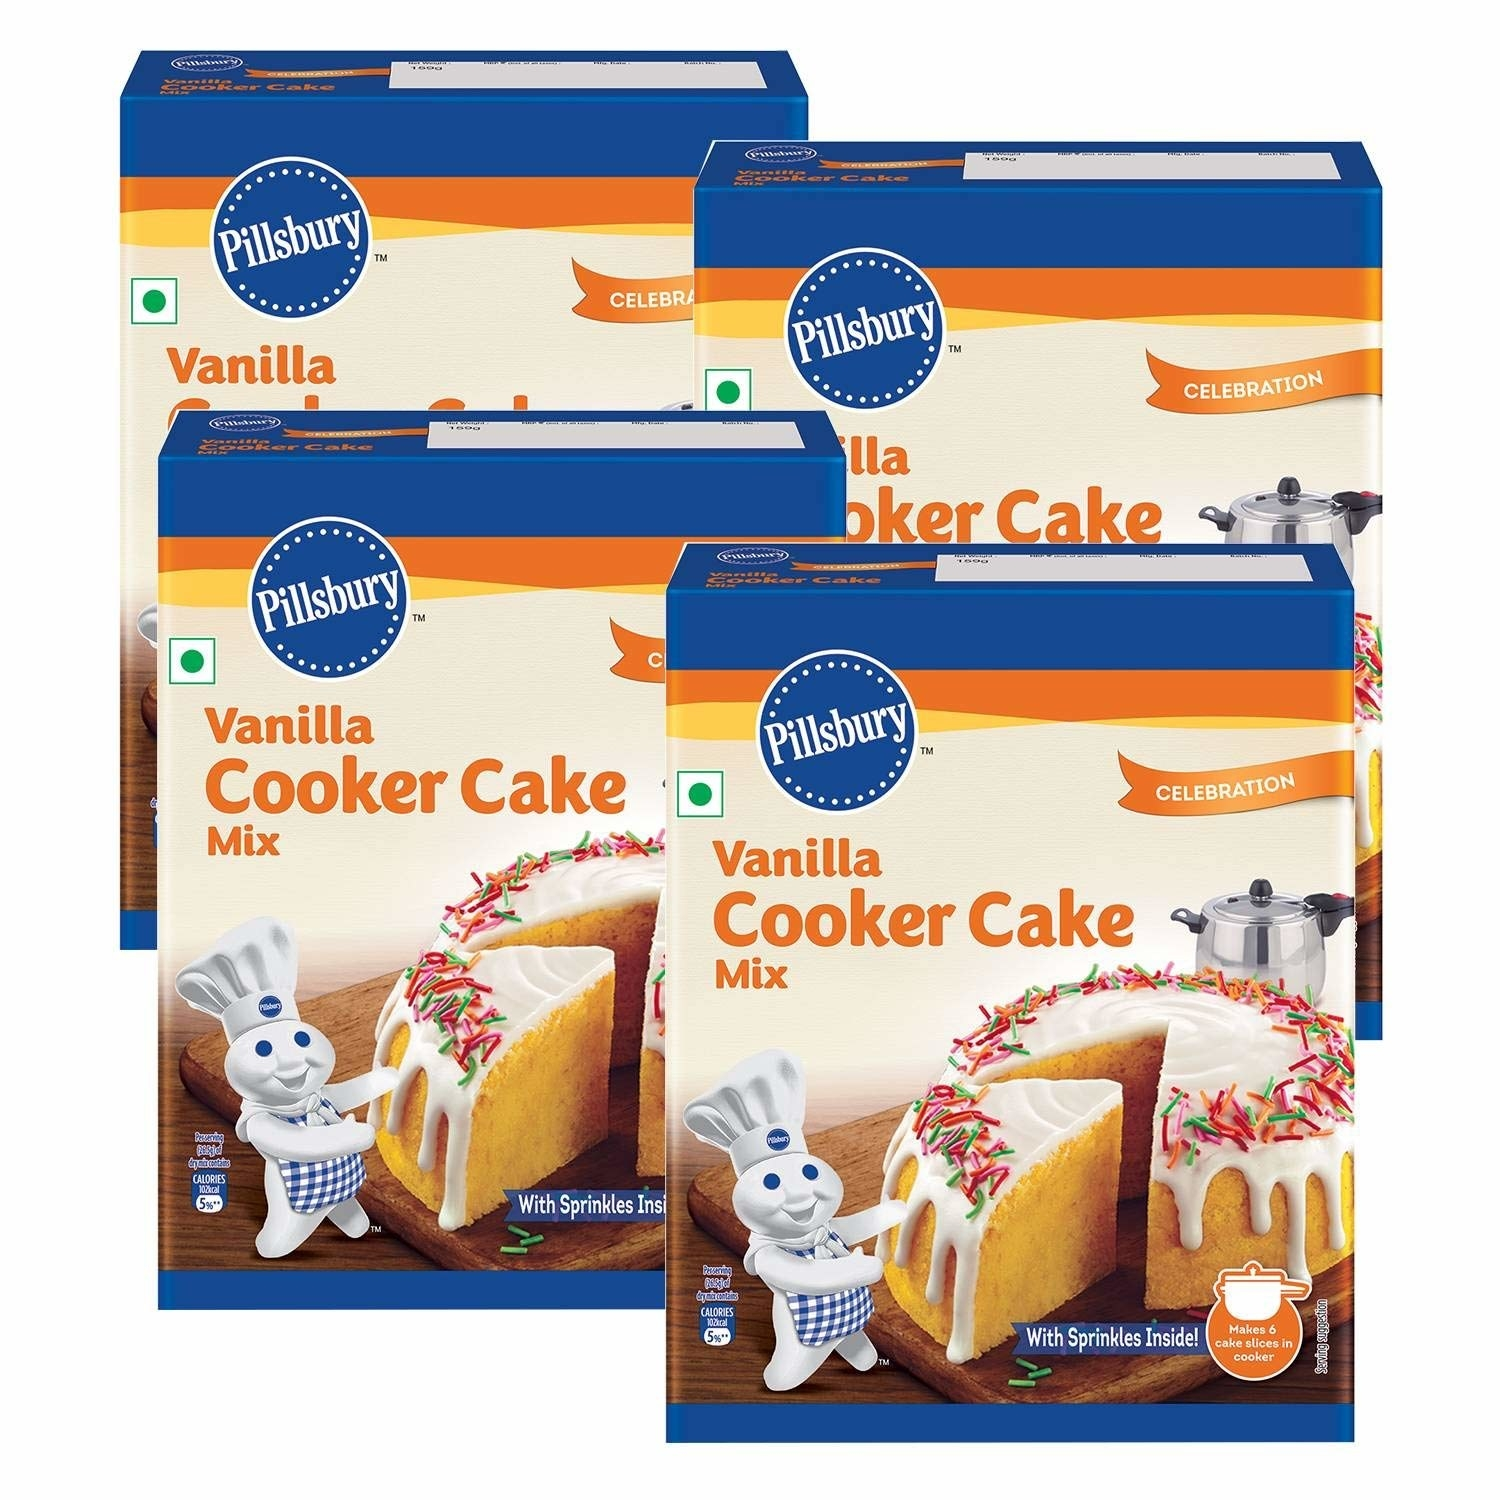 Packaging of the cooker cake